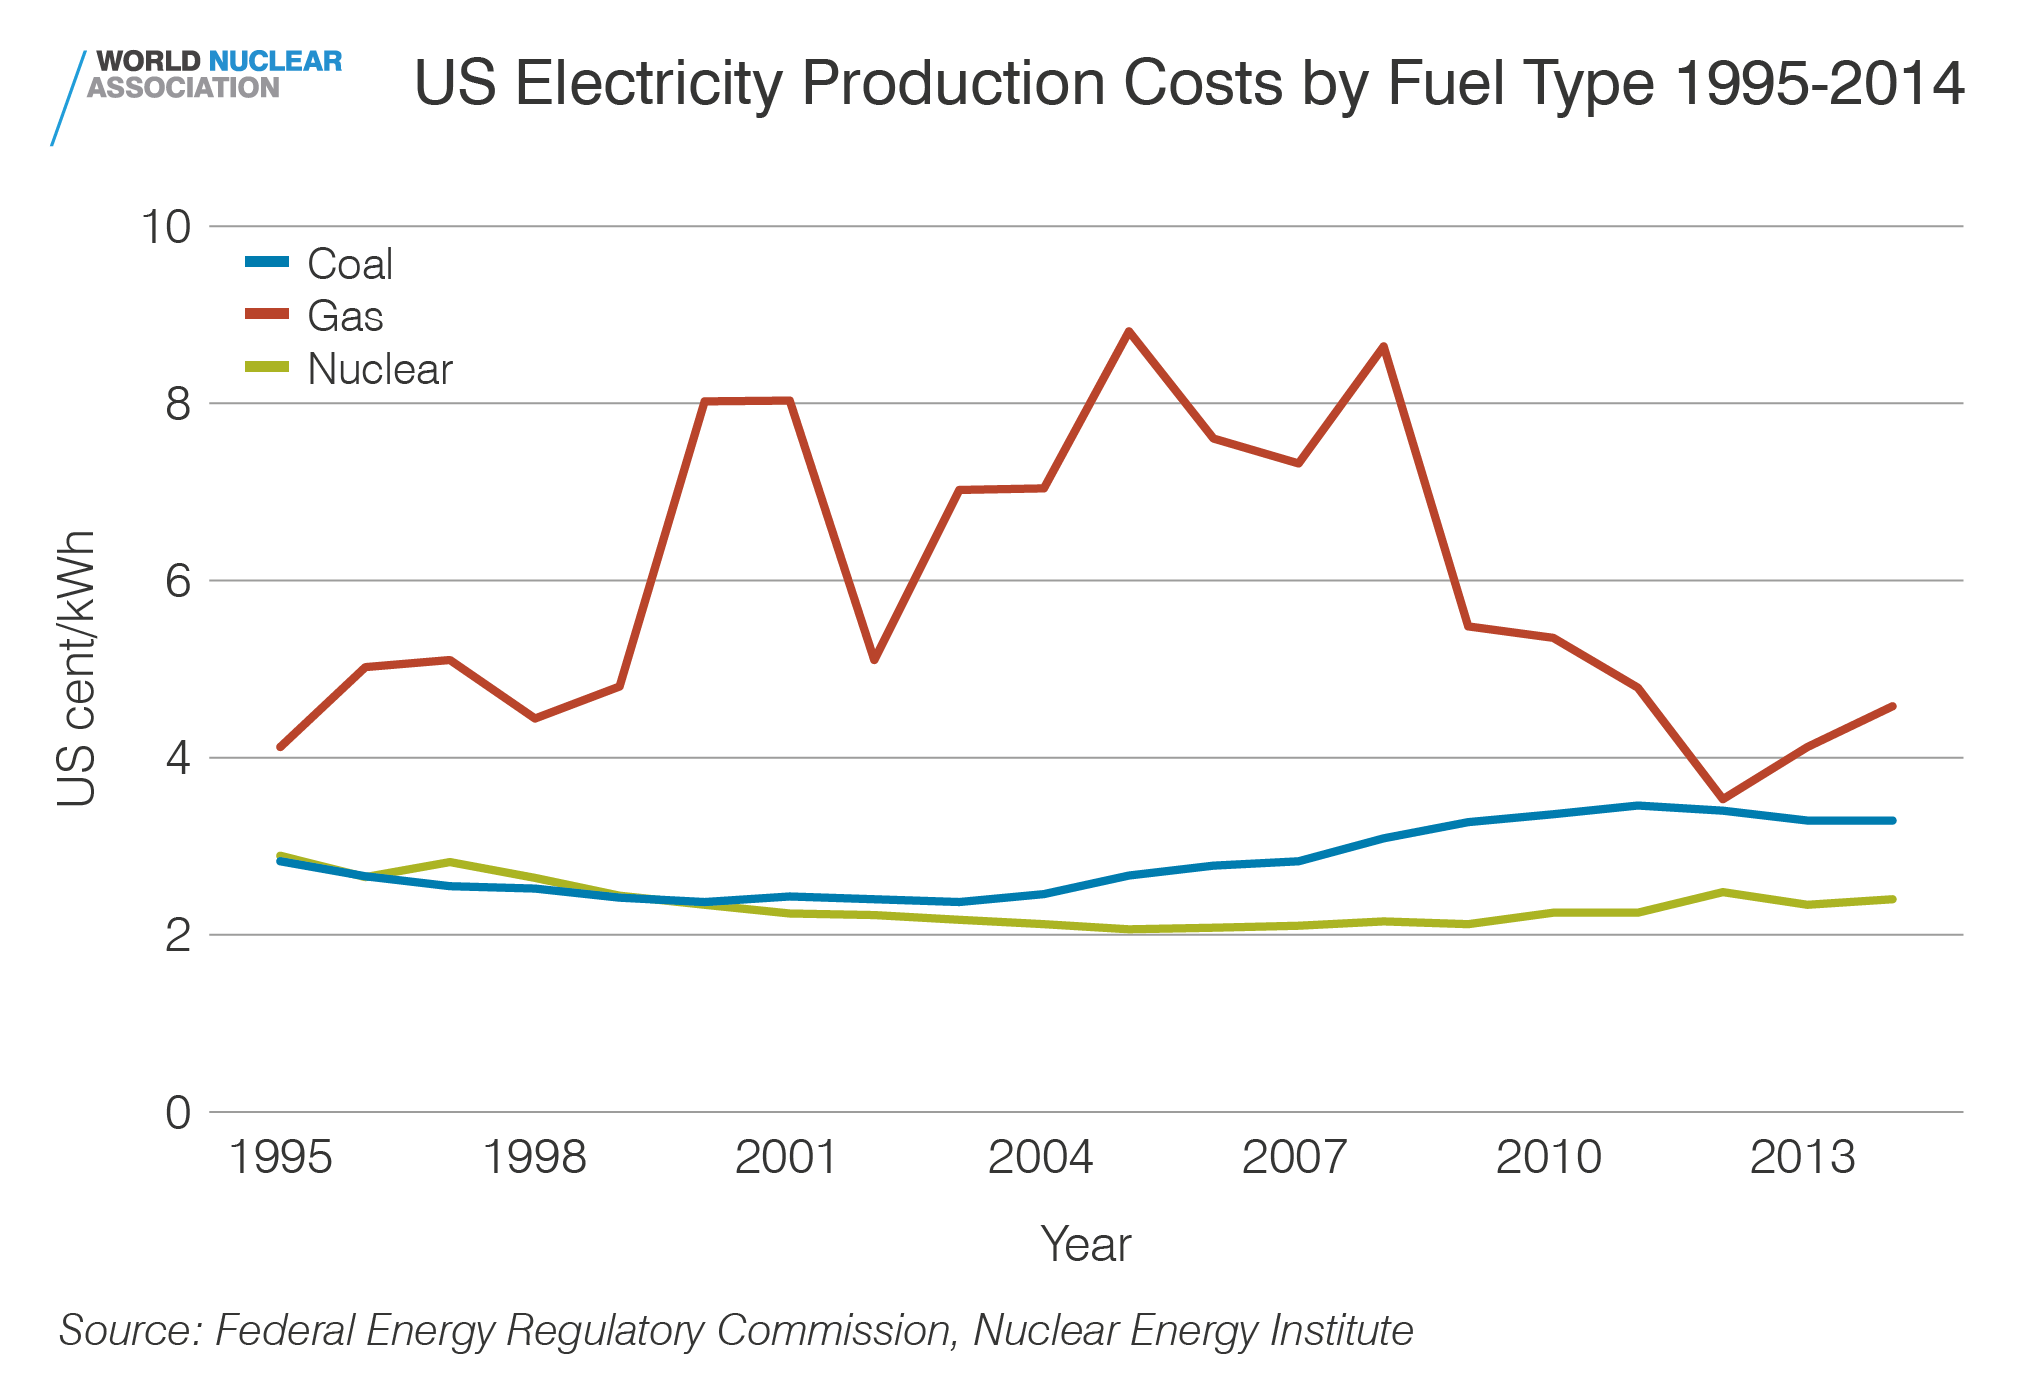 US electricity production costs by fuel type 1995-2014